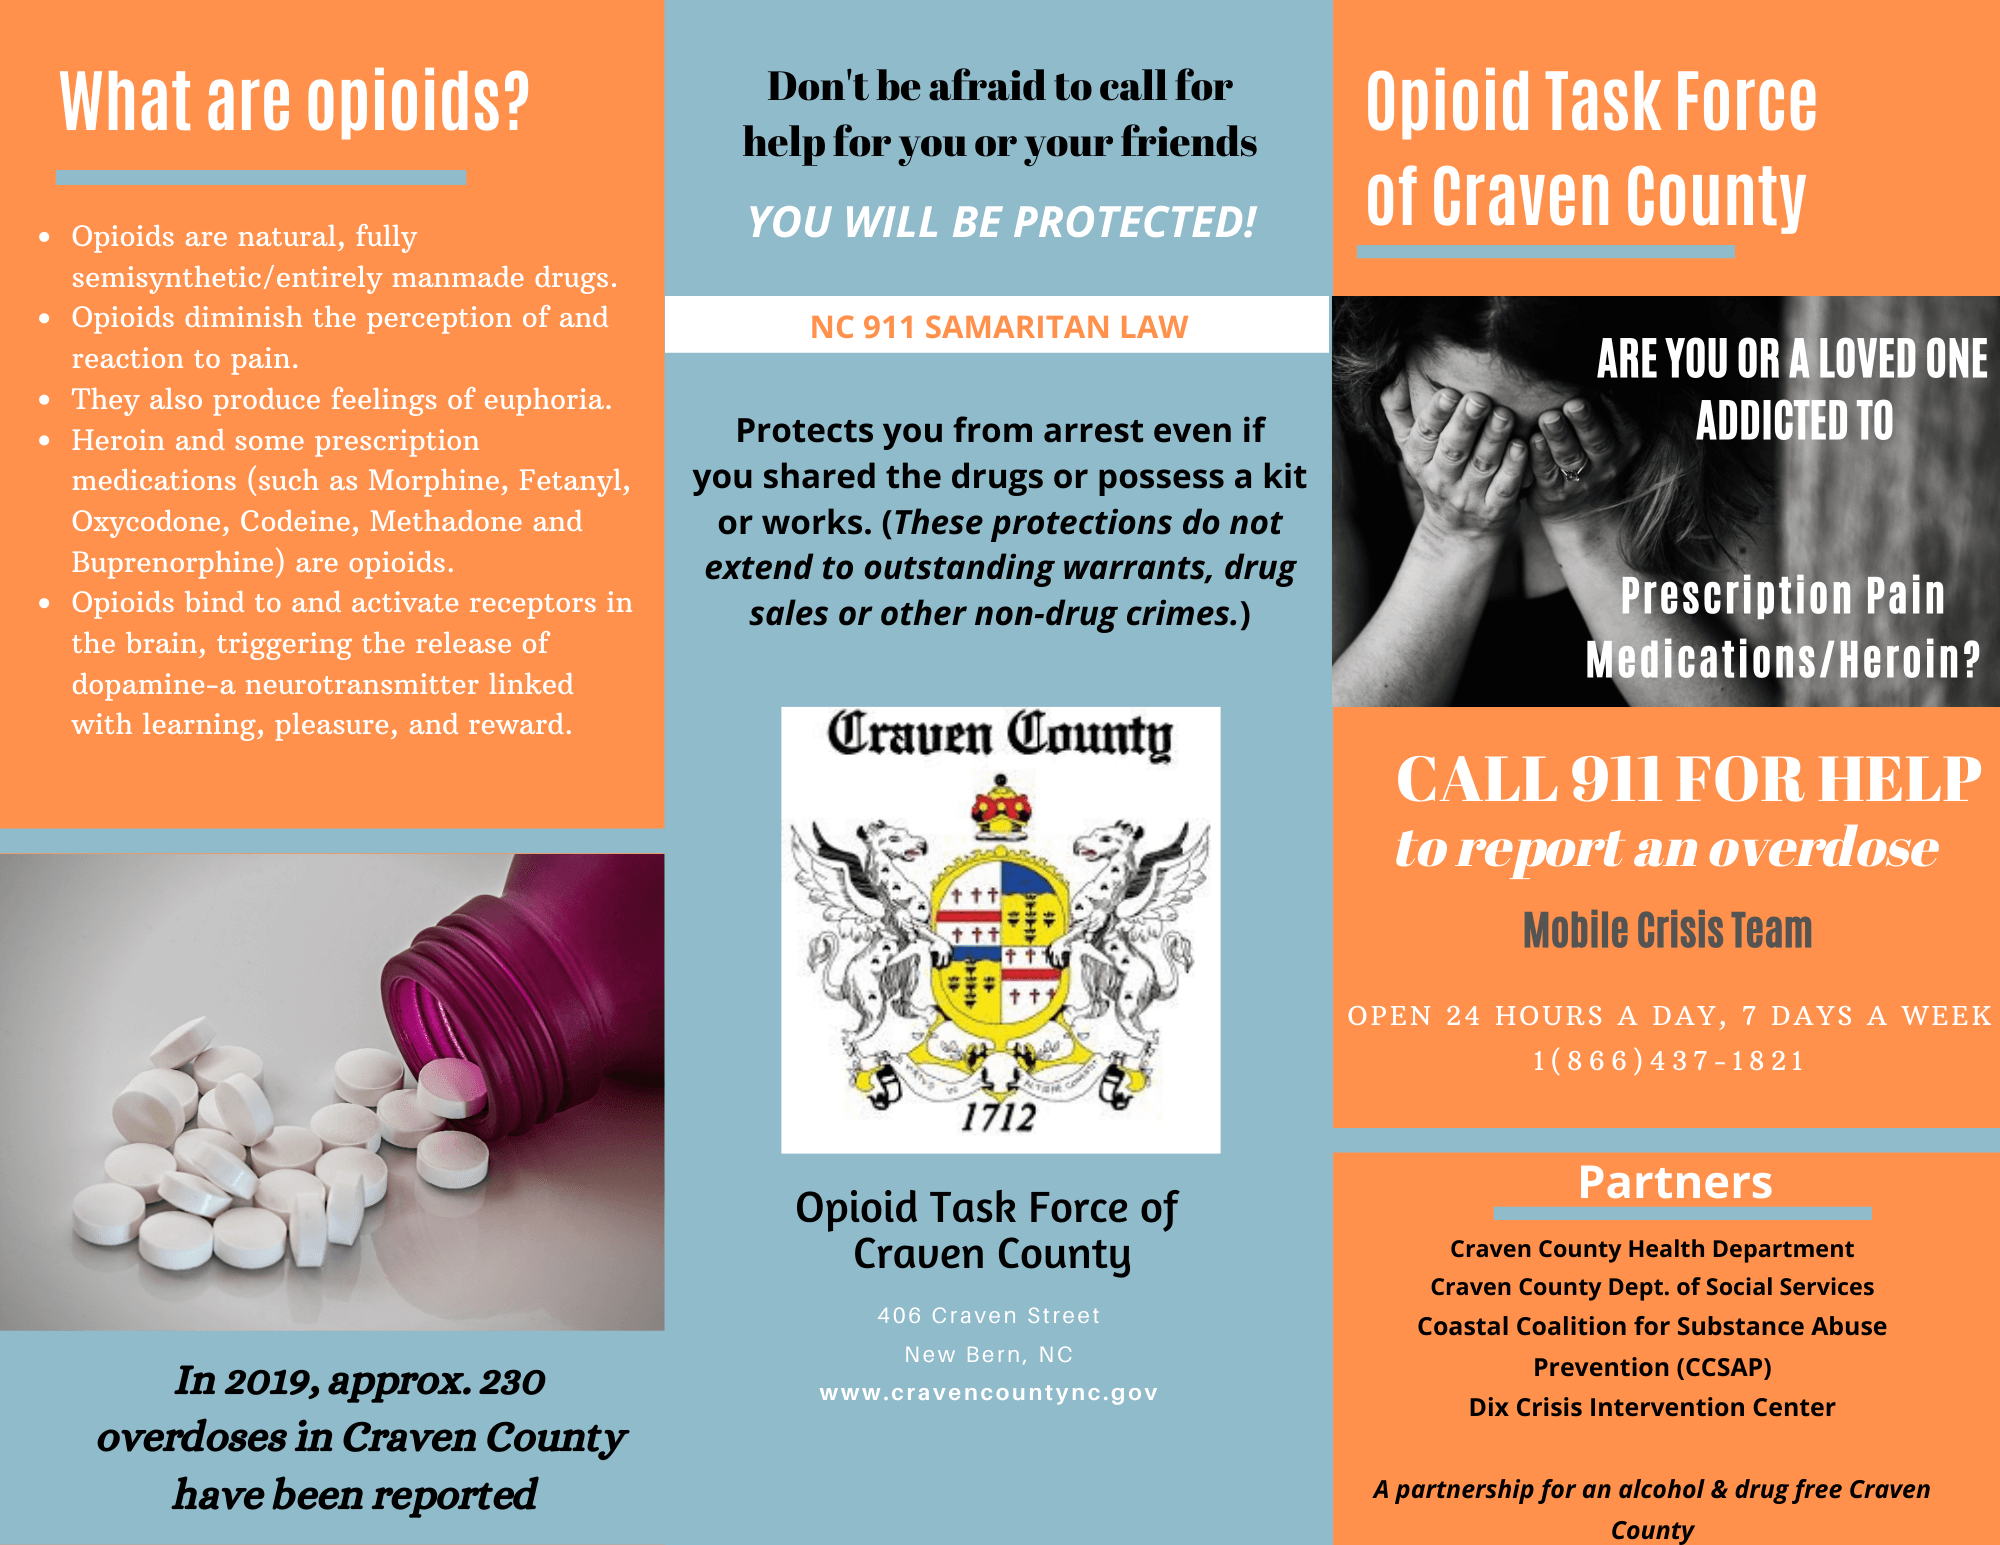 Opioid Task Force Informational Brochure